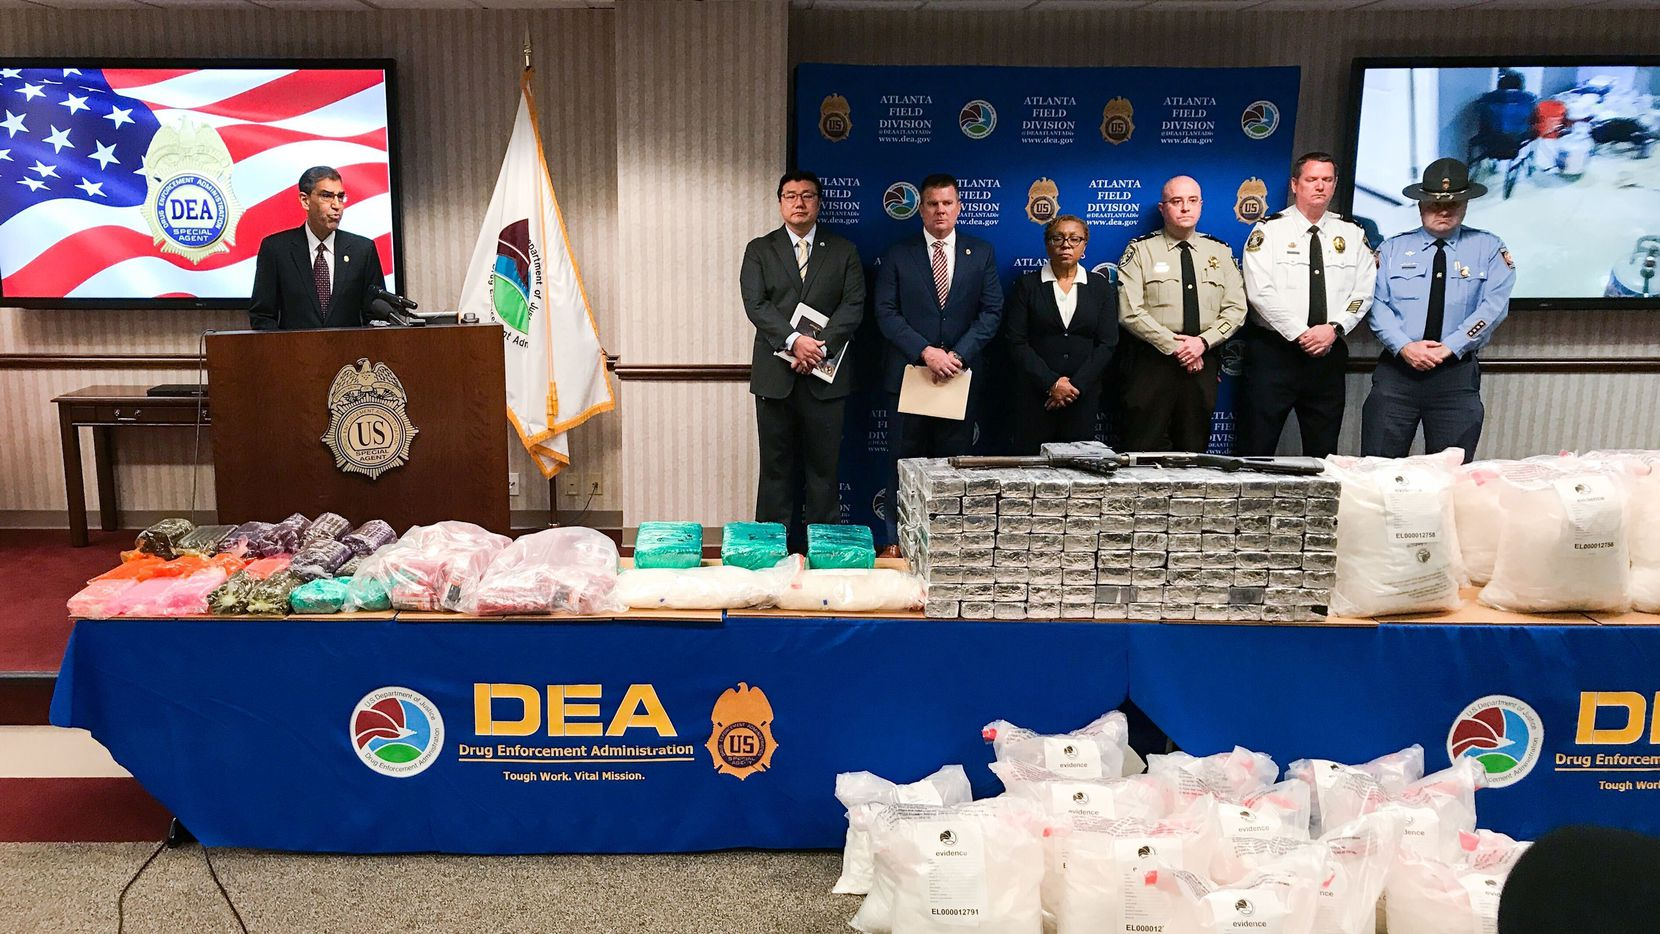 U.S. Drug Enforcement Administration Acting Administrator Uttam Dhillon announces the launch of Operation Crystal Shield at a news conference in Atlanta on Thursday, Feb. 20, 2020. On the tables and floor in front of him are evidence bags containing about 1,300 pounds of processed crystal meth seized in suburban Atlanta, along with about 100 gallons of a product that could be cooked into about 5 to 7 pounds of crystal meth per gallon. The drugs shown here represent about 2.3 million individual doses, the DEA said.